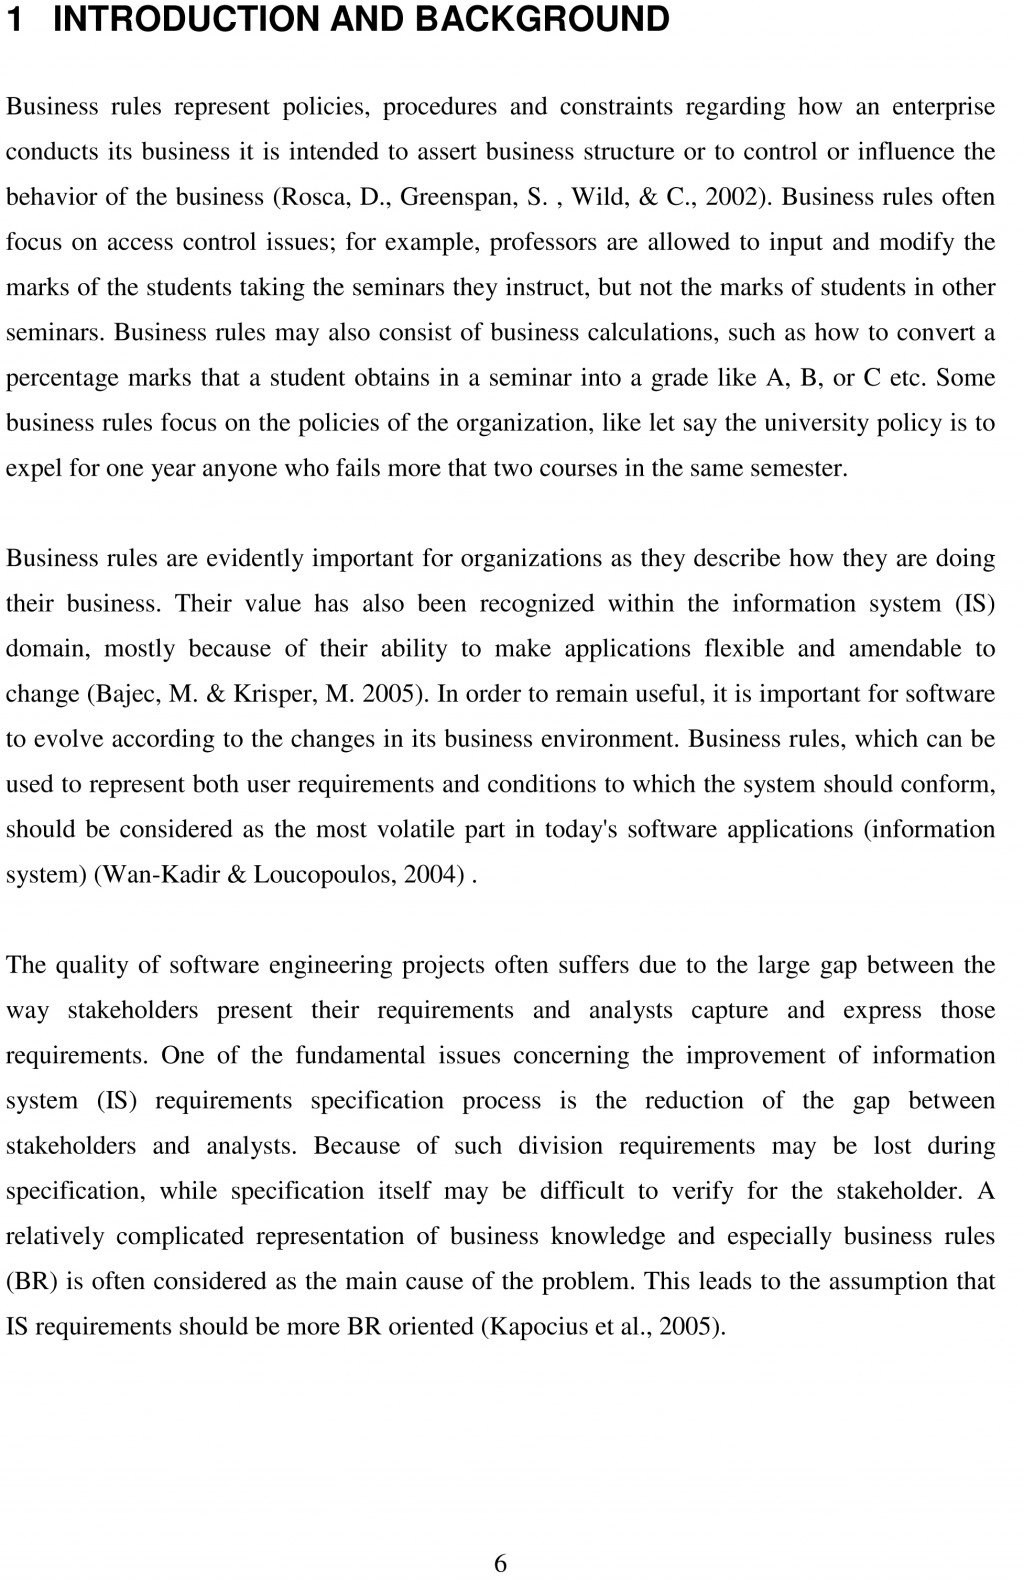 005 Research Paper Thesis Free Sample1 Help Me With My Stirring For Large